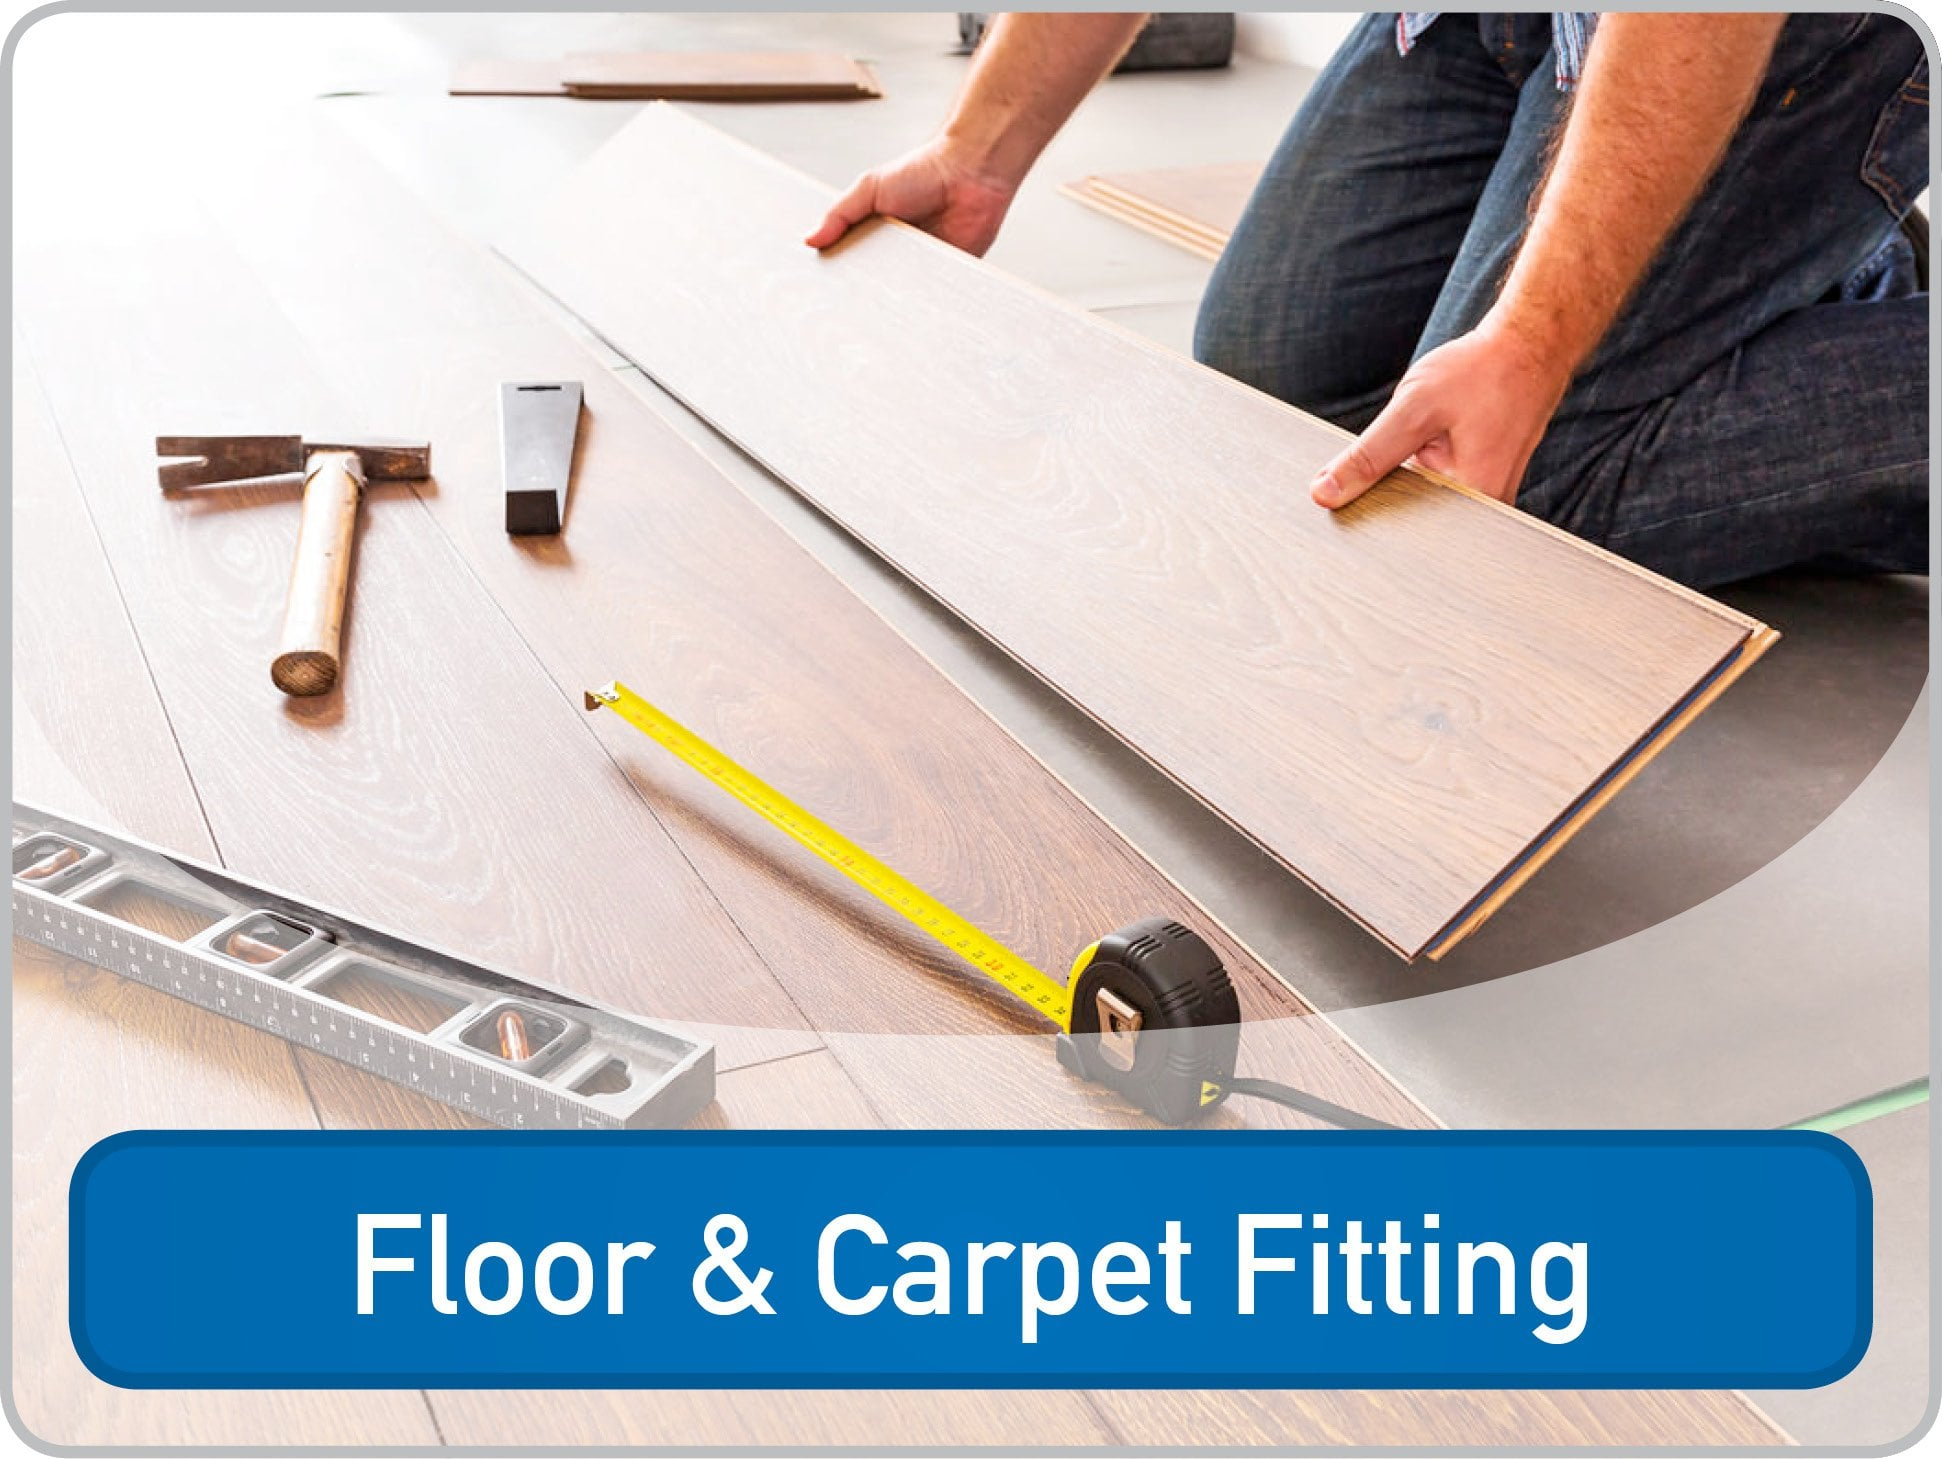 Floor and Carpet Fitting